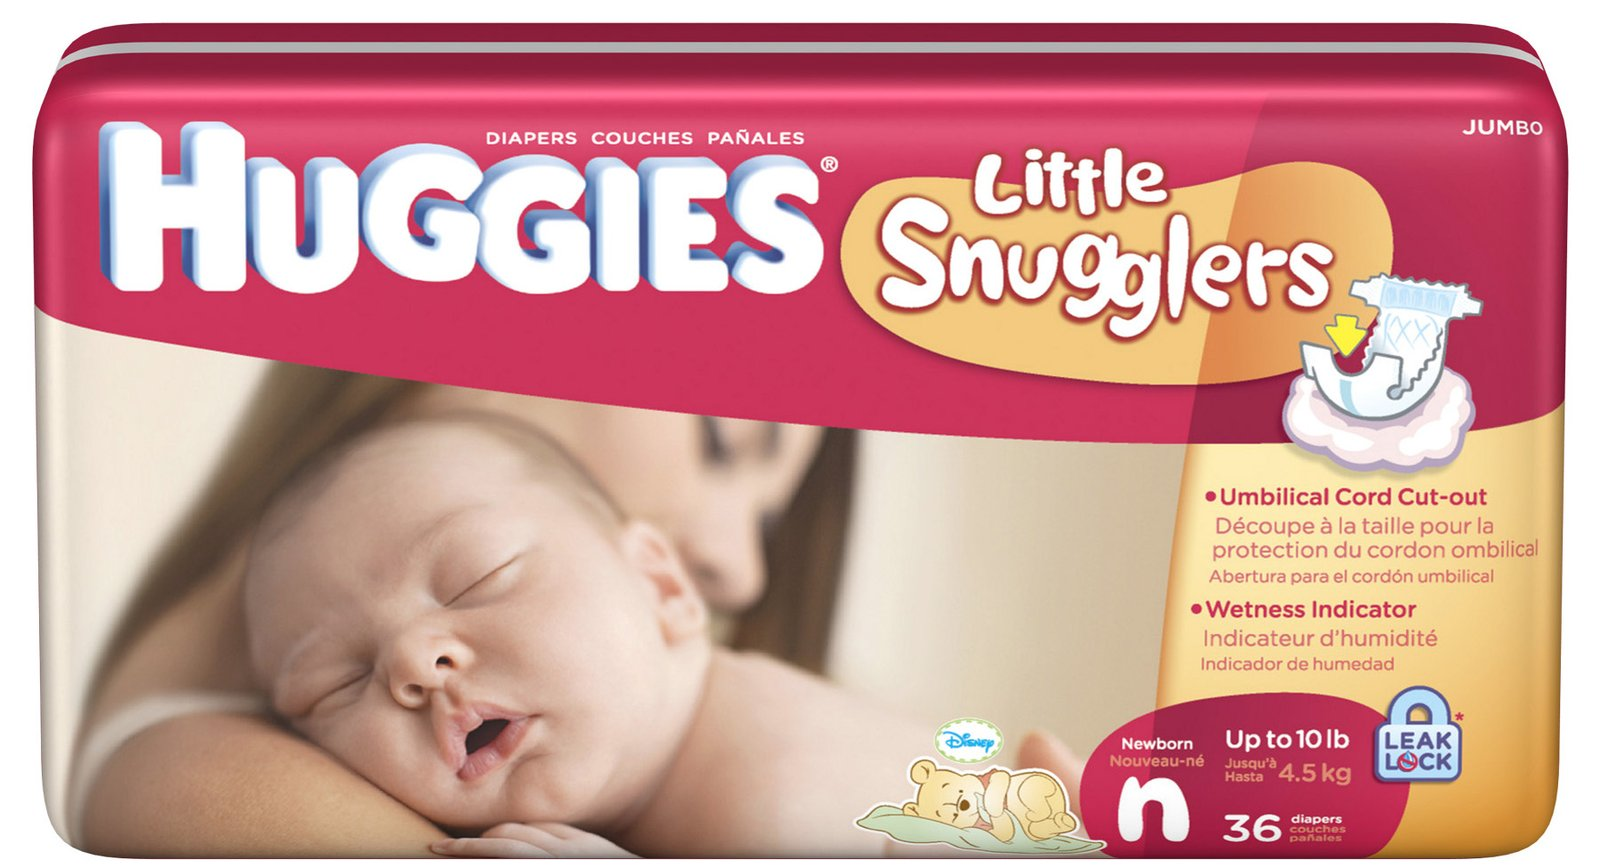 huggiessnugglers Huggies Diapers Jumbo Packs Only $4.49 at Target!